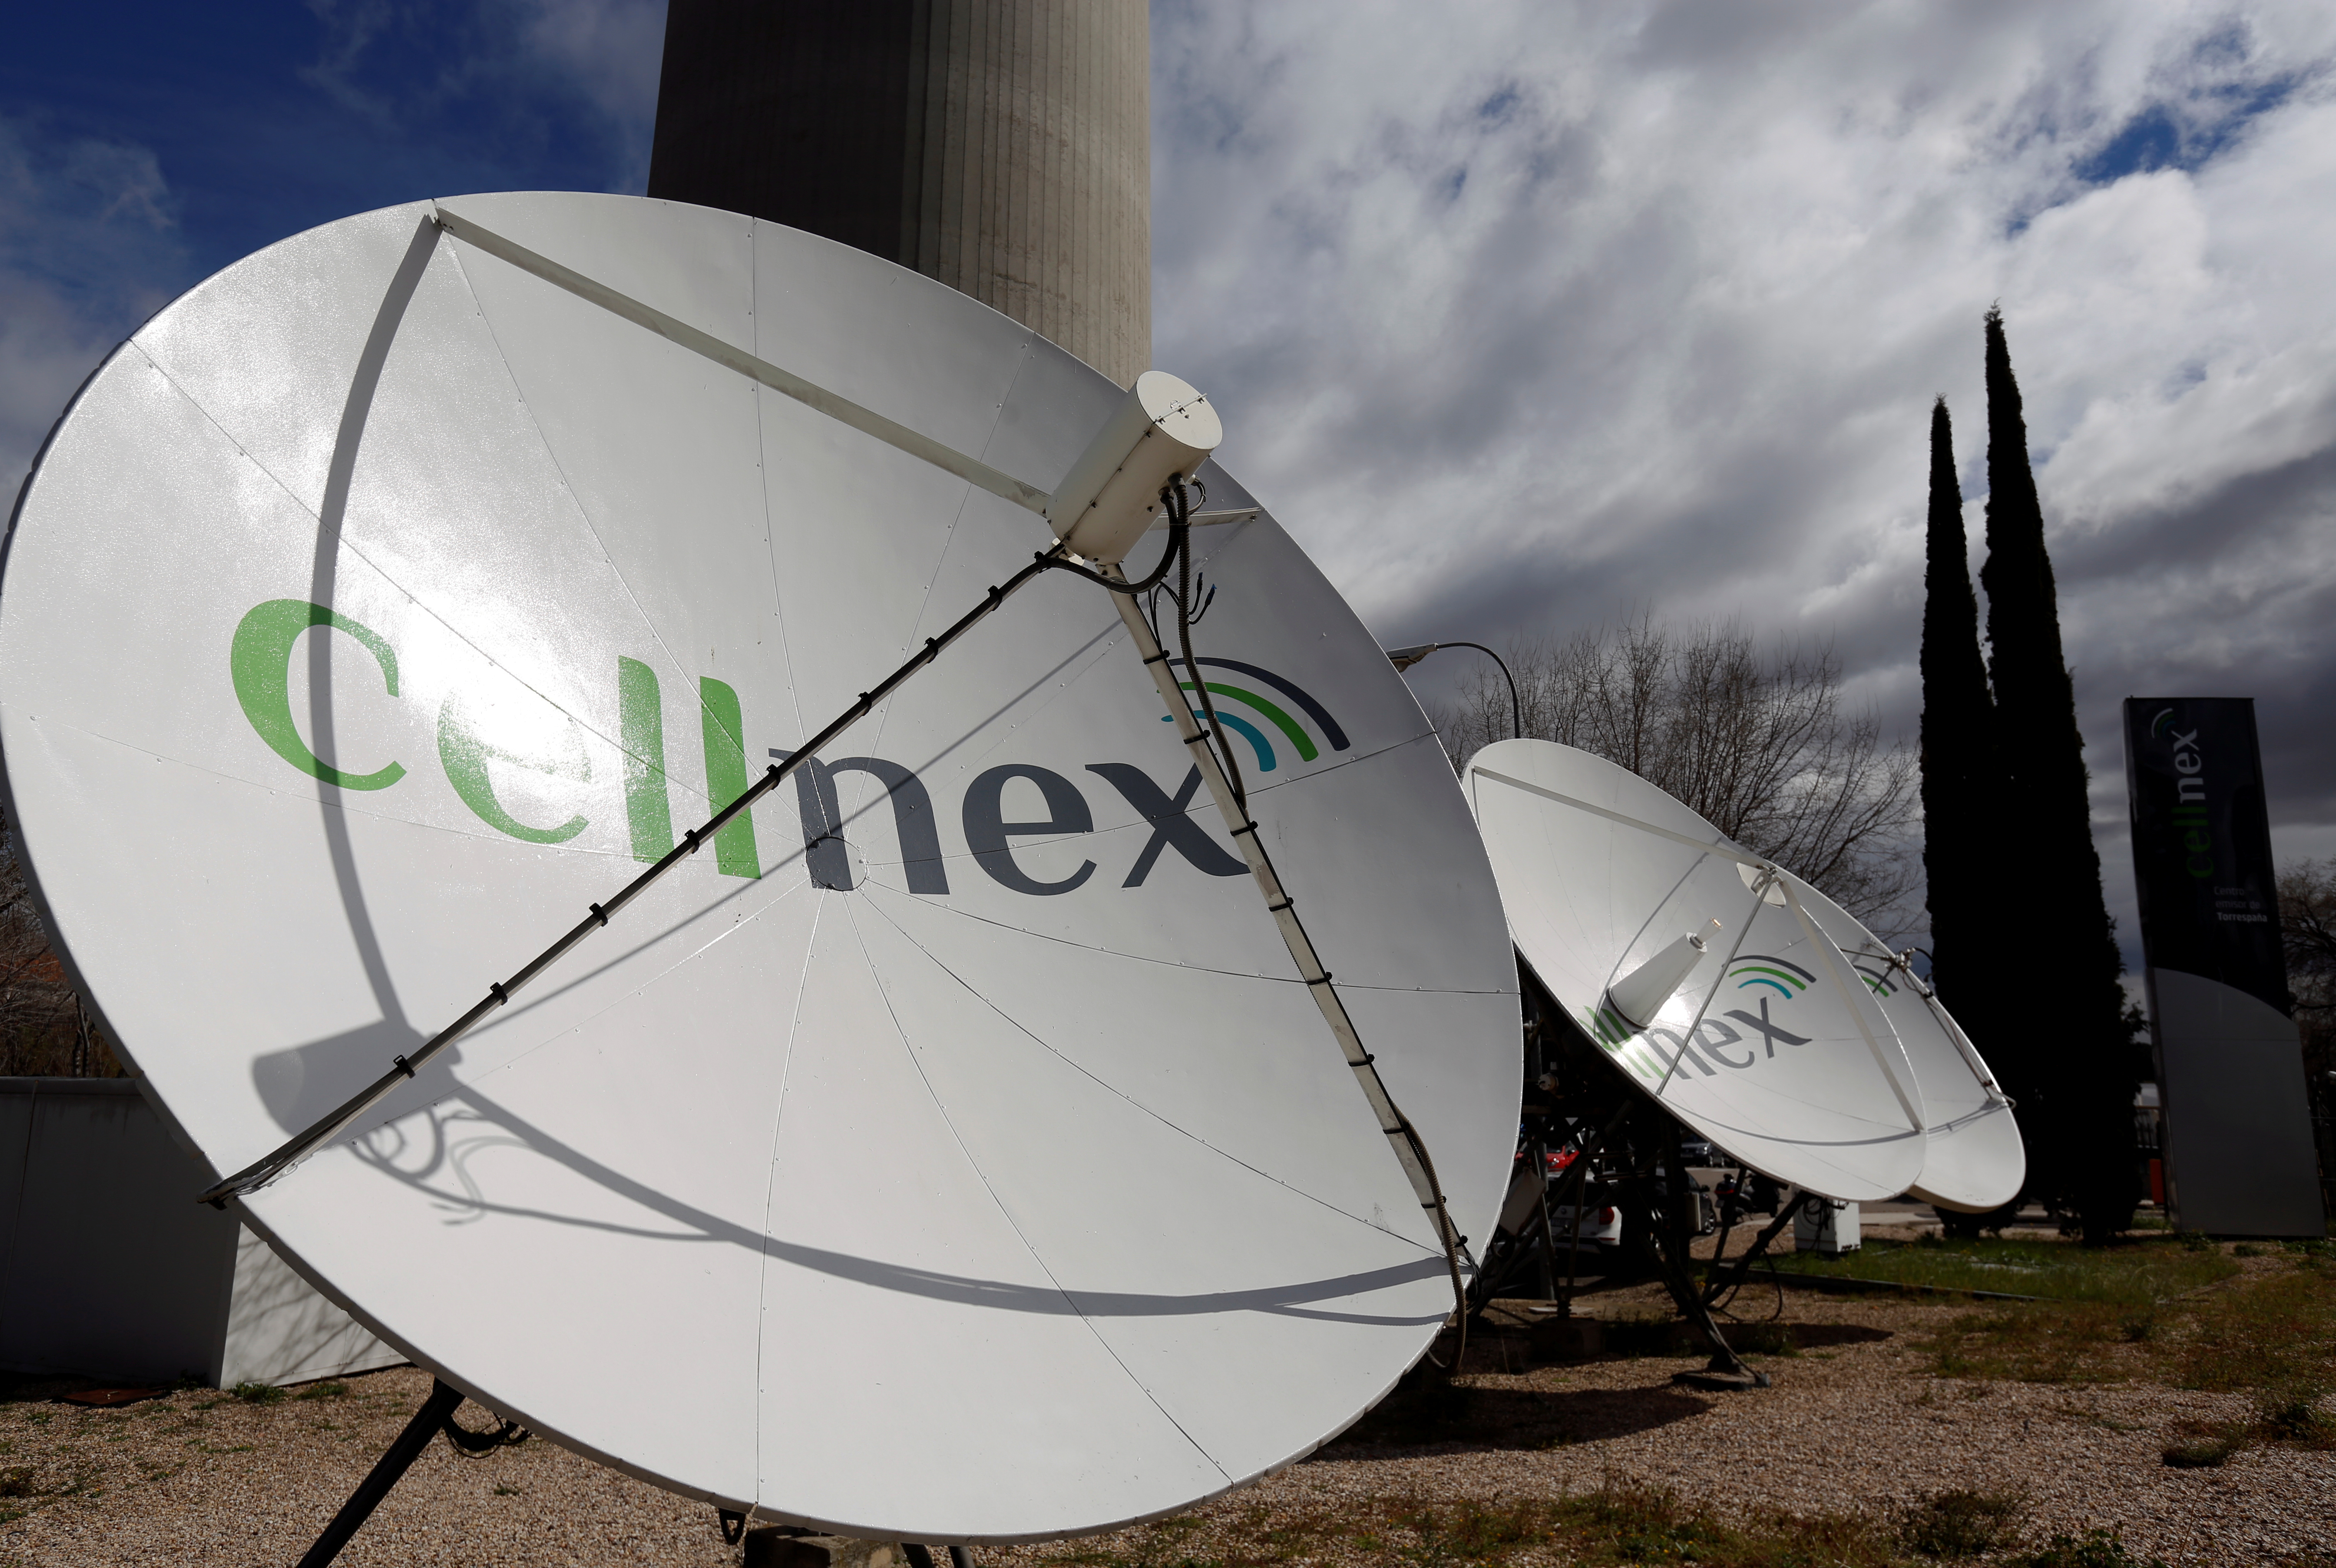 Telecom antennas of Spain's telecoms infrastructures firm Cellnex are seen under main telecom tower, known as